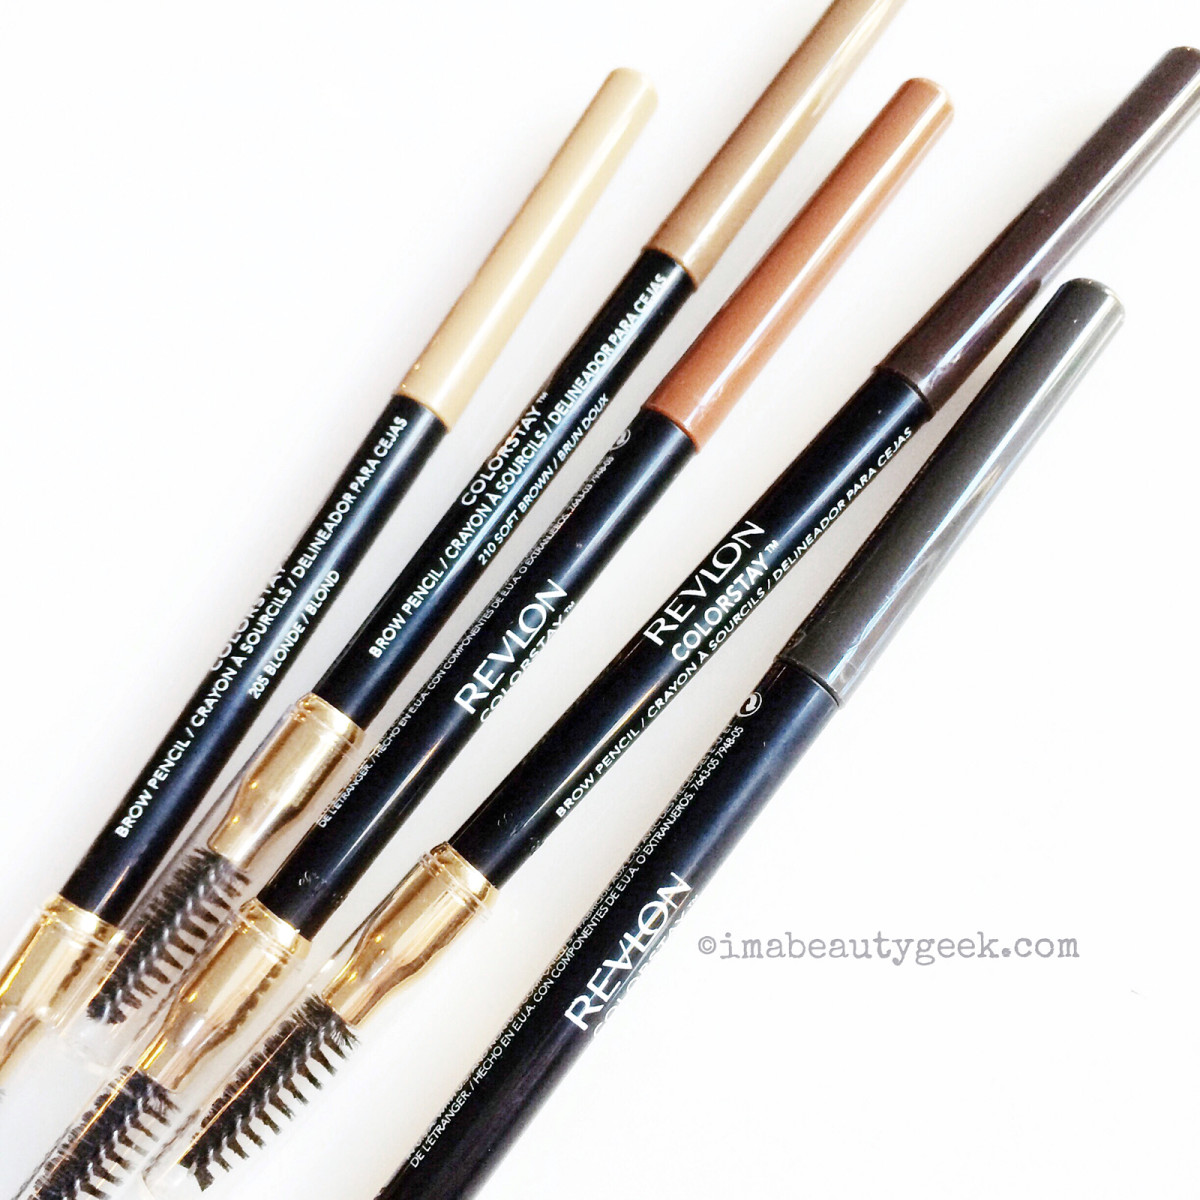 New Revlon ColorStay Brow Pencils in Blonde, Soft Brown, Auburn, Dark Brown, and Soft Black